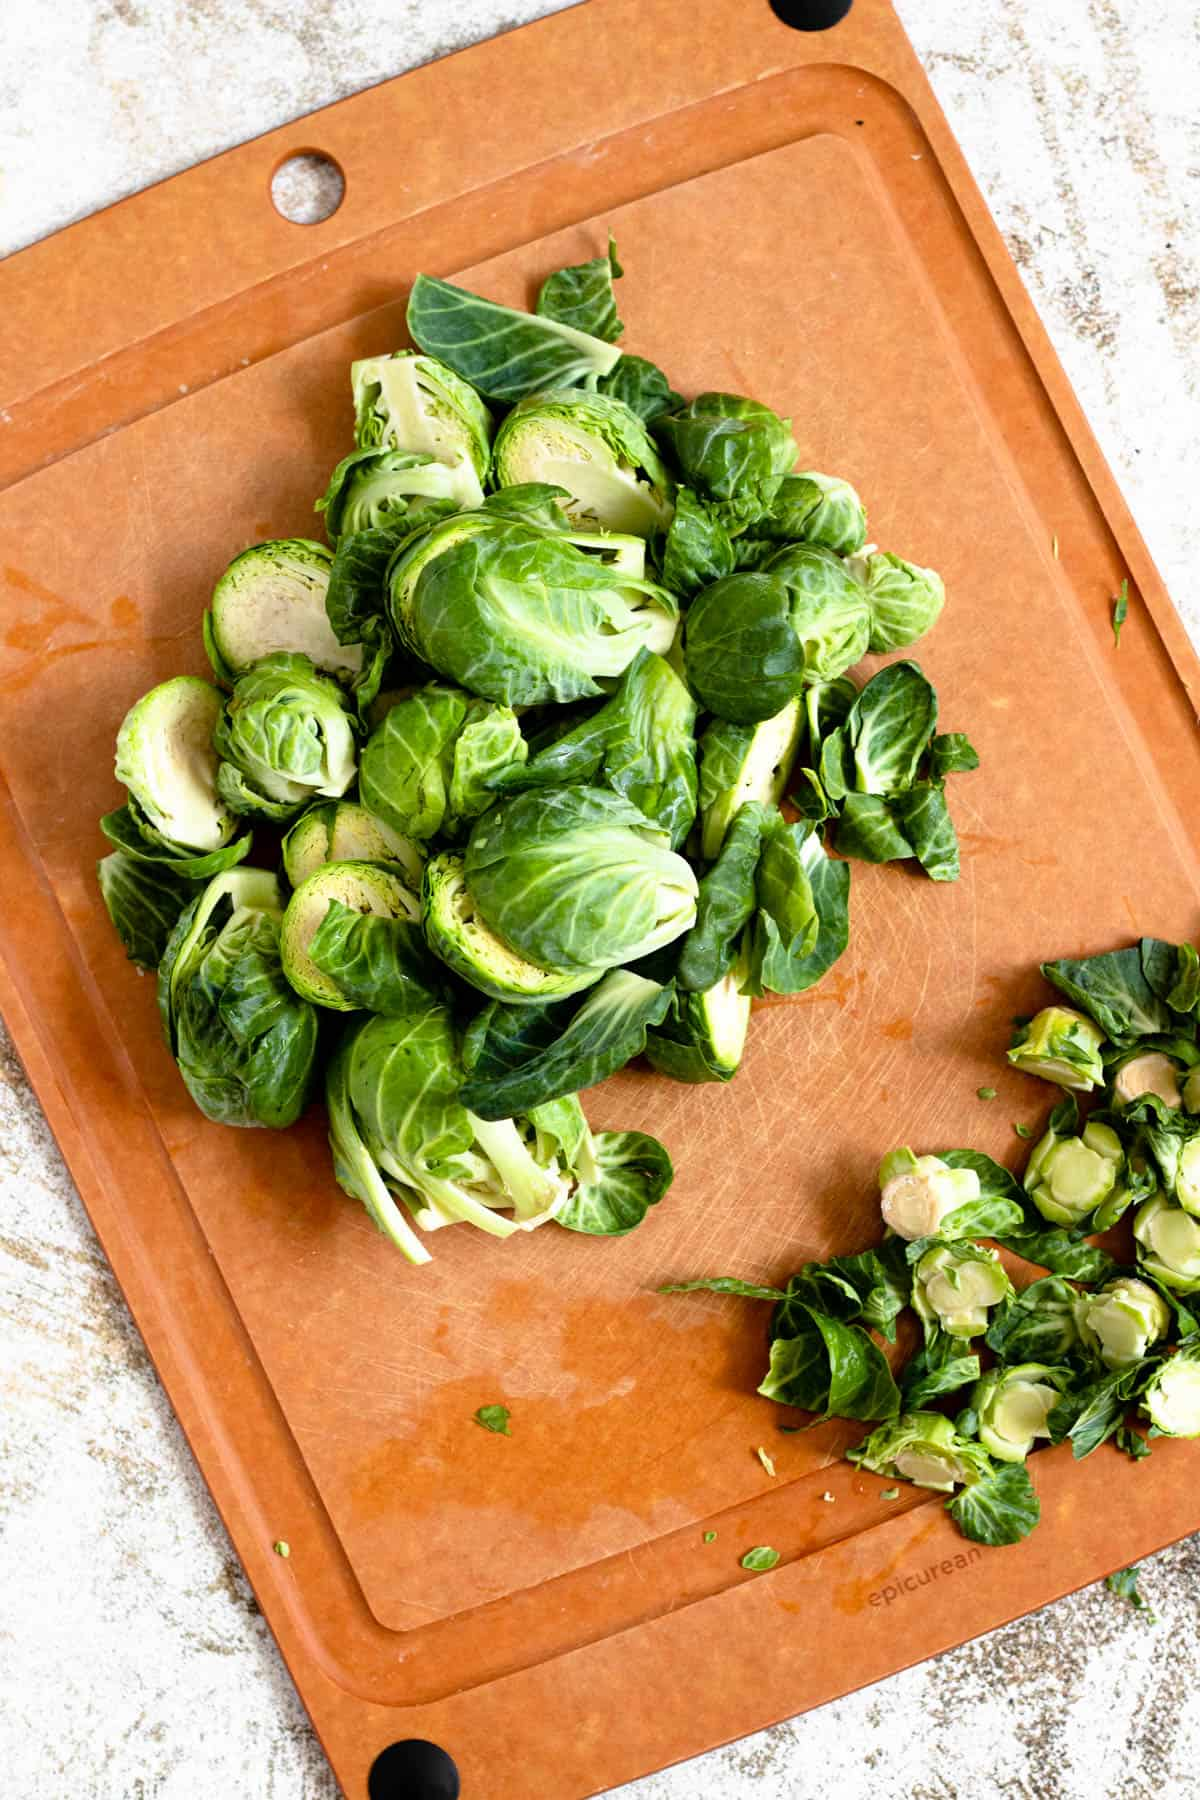 Cleaned brussels sprouts with stems trimmed